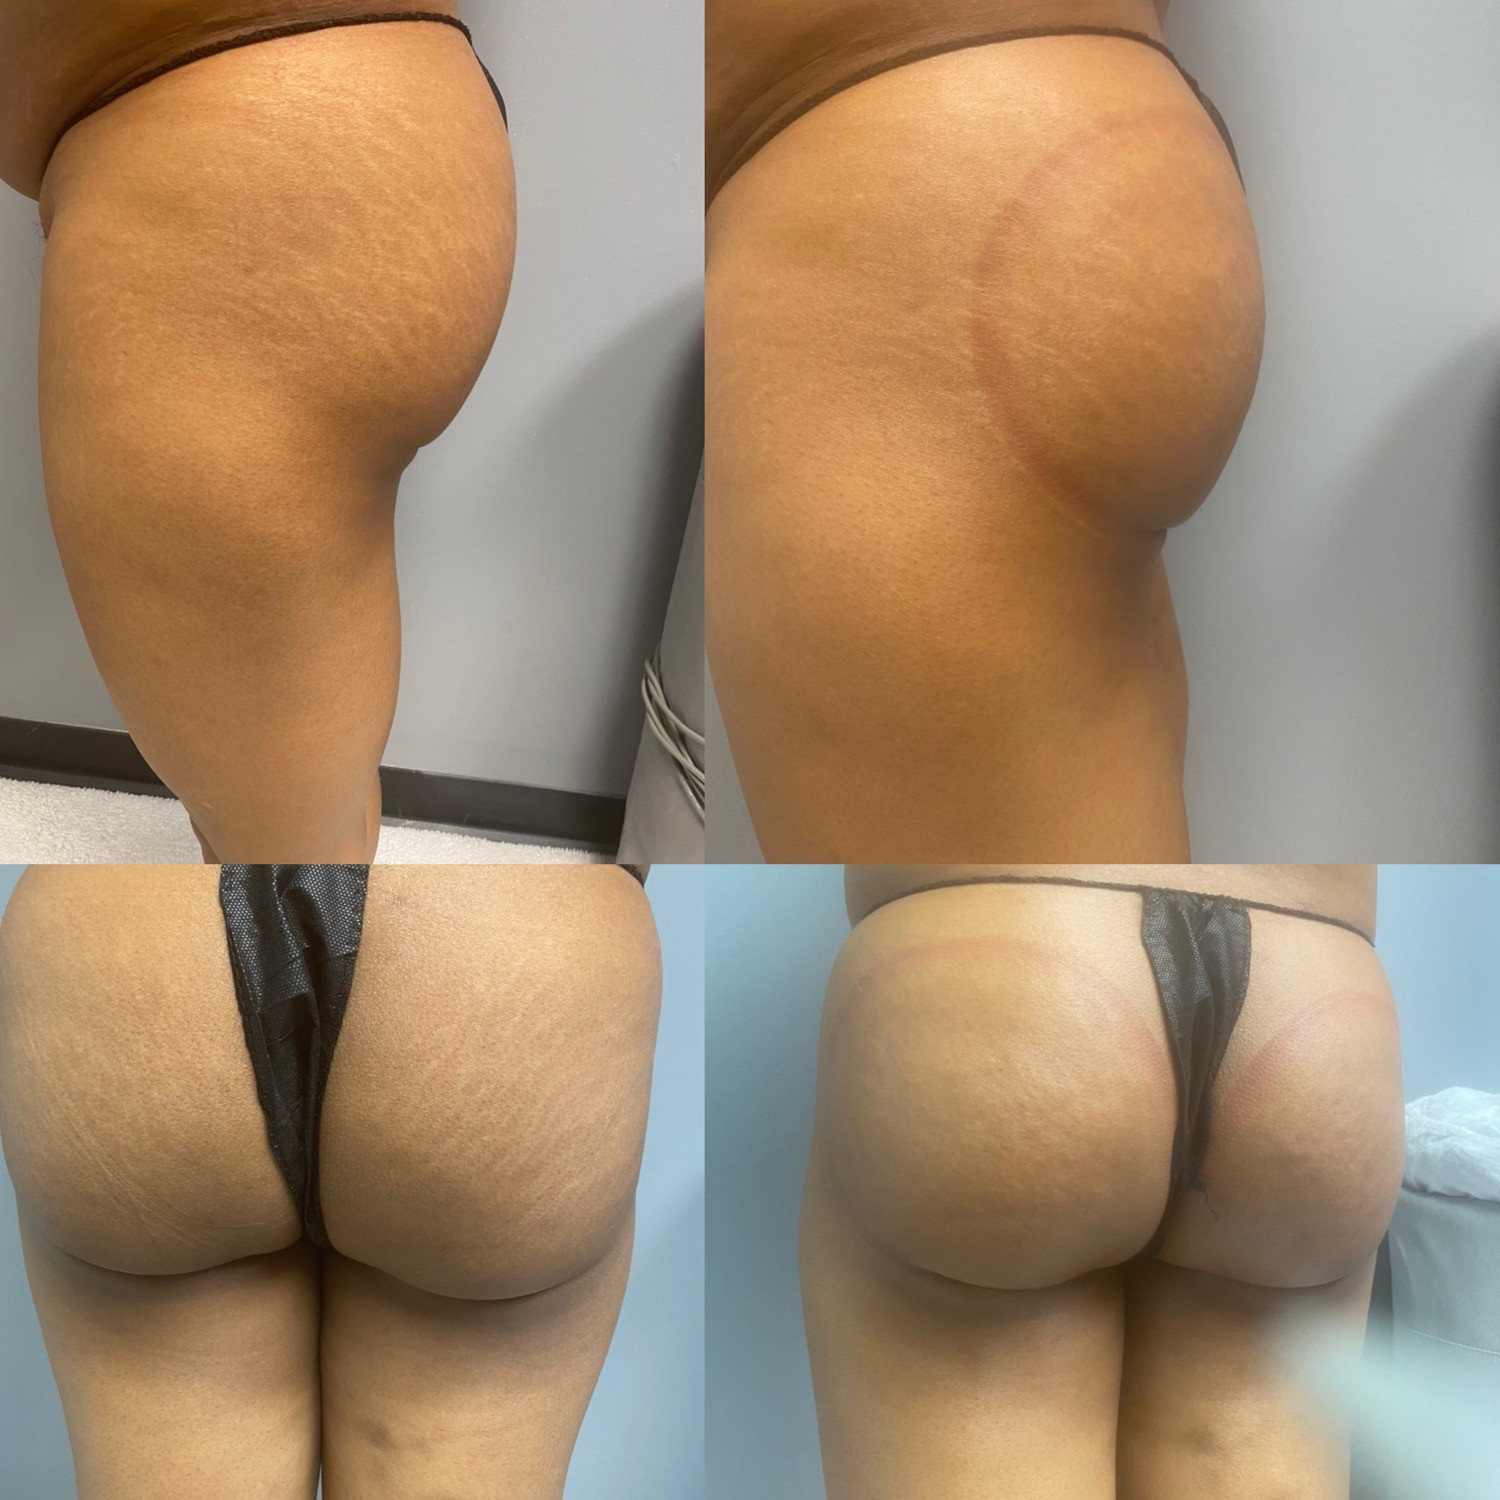 Butt lift w/wood therapy